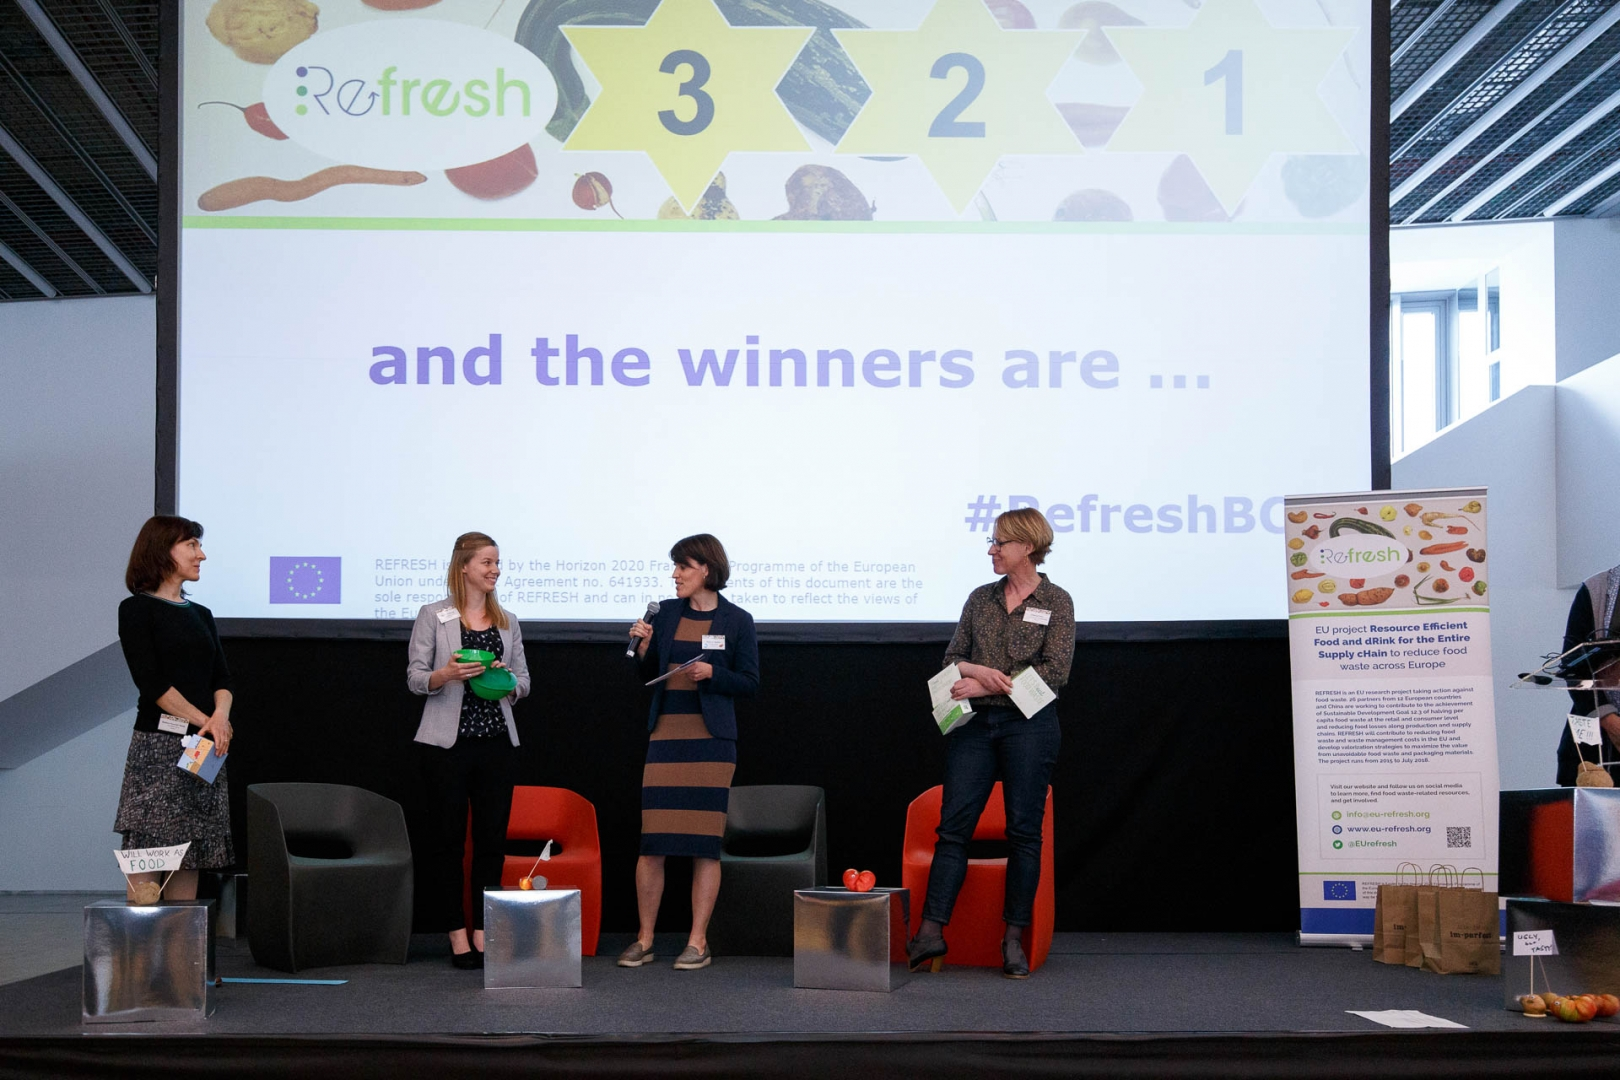 The award ceremony was presented by Elena von Sperber from REFRESH partner Ecologic Institute, Germany.